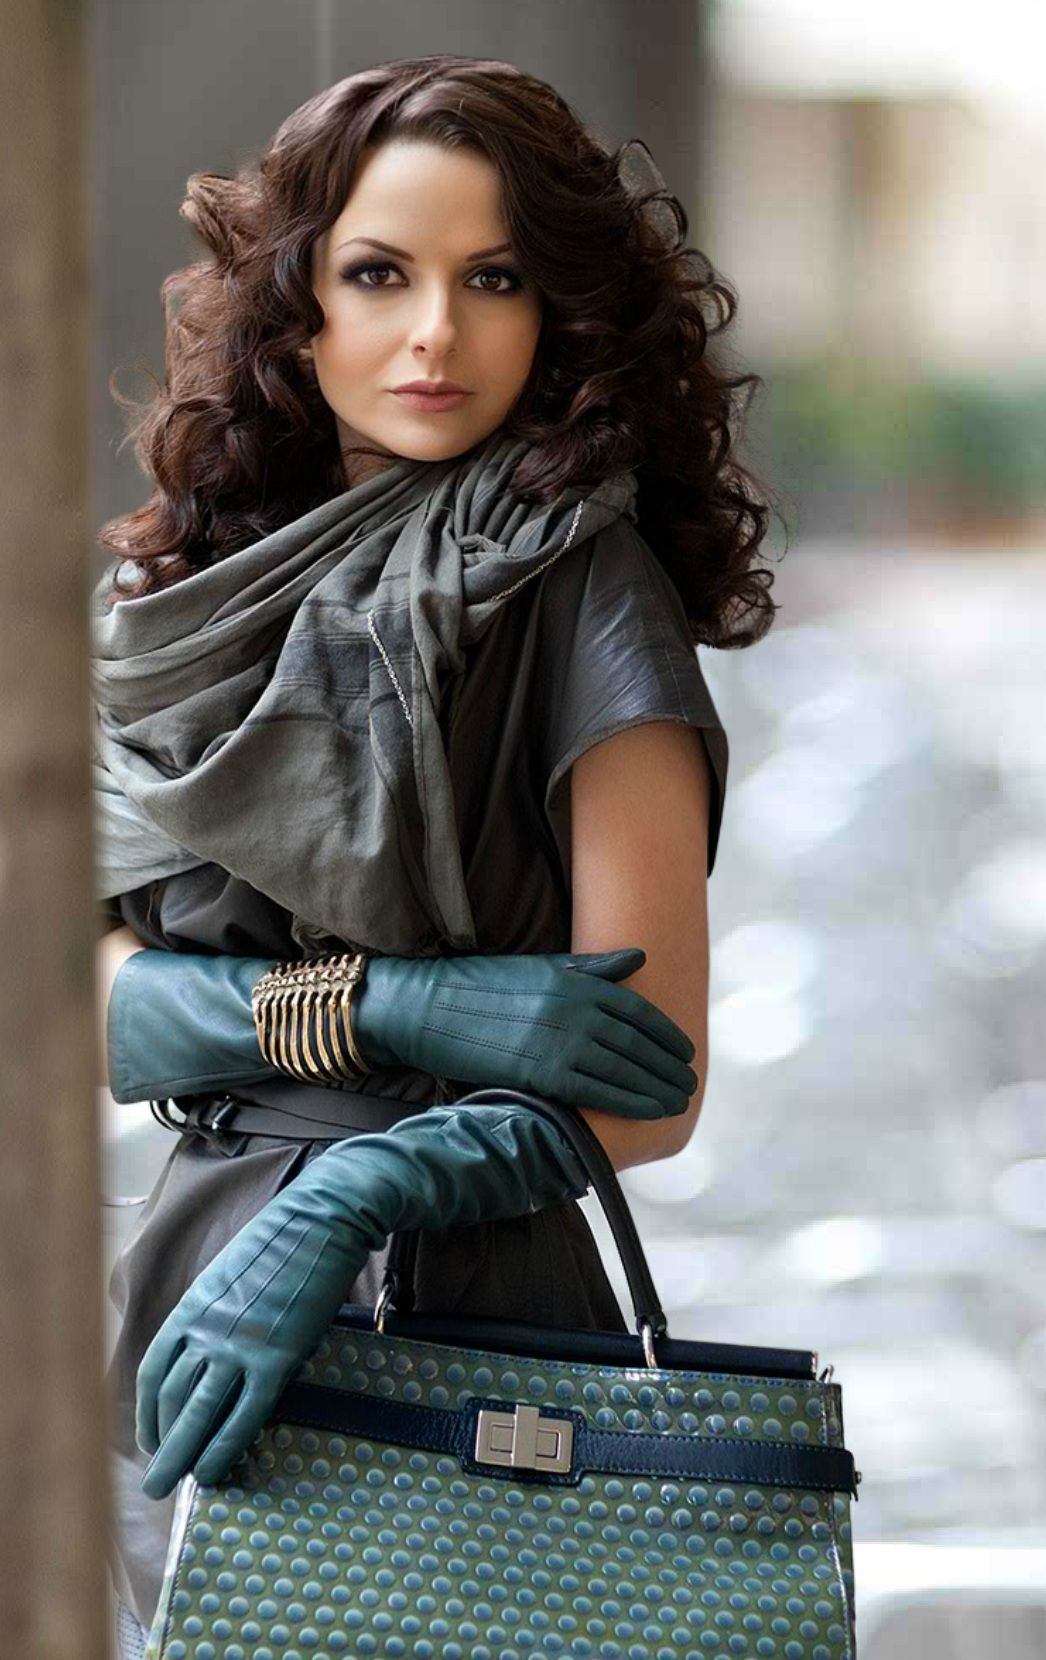 Womens leather gloves sydney - Leather Gloves Photo